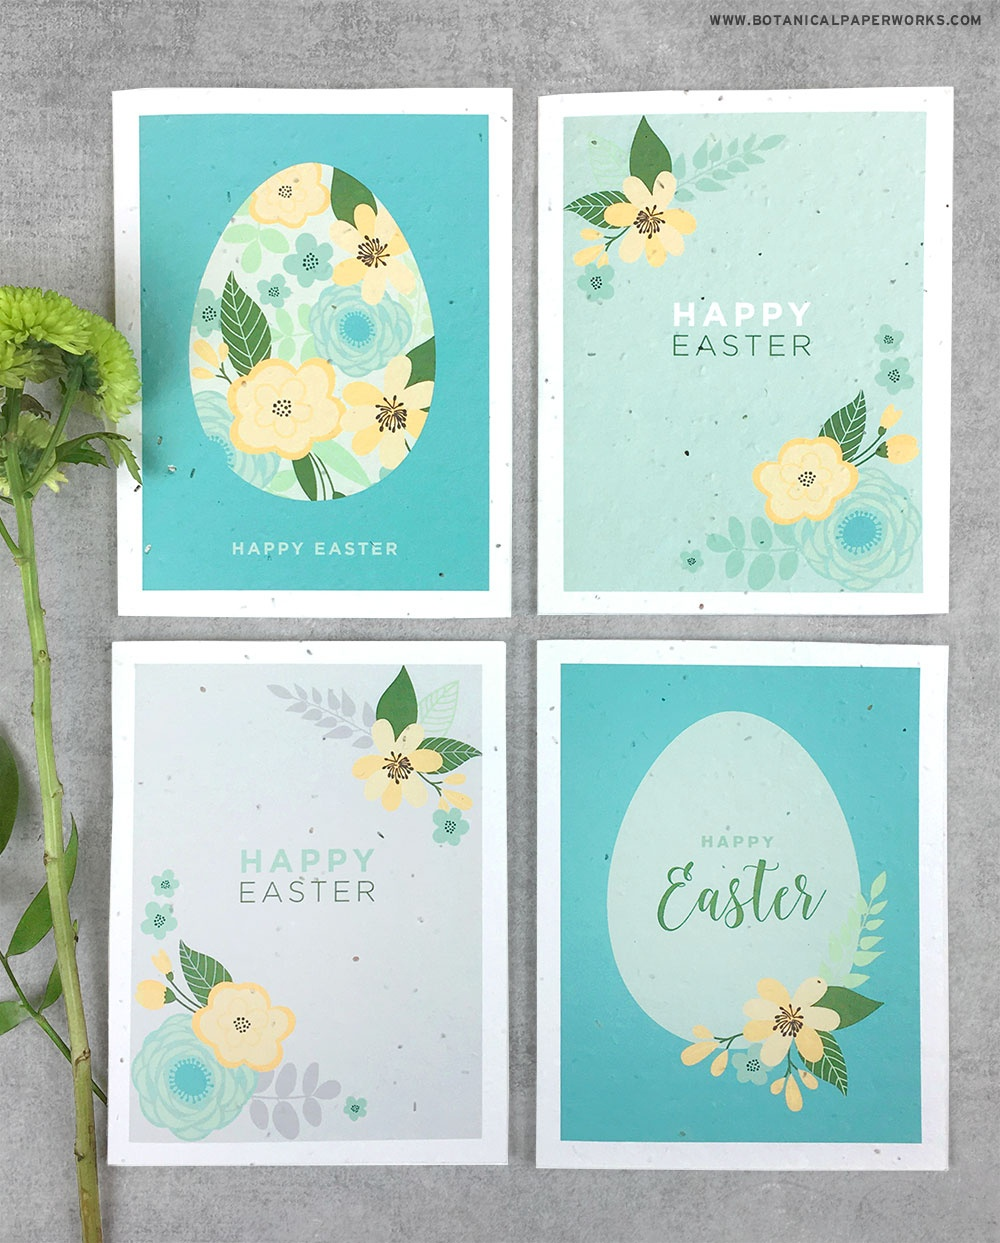 Free Printable} Easter Cards | Blog | Botanical Paperworks - Free Printable Easter Cards